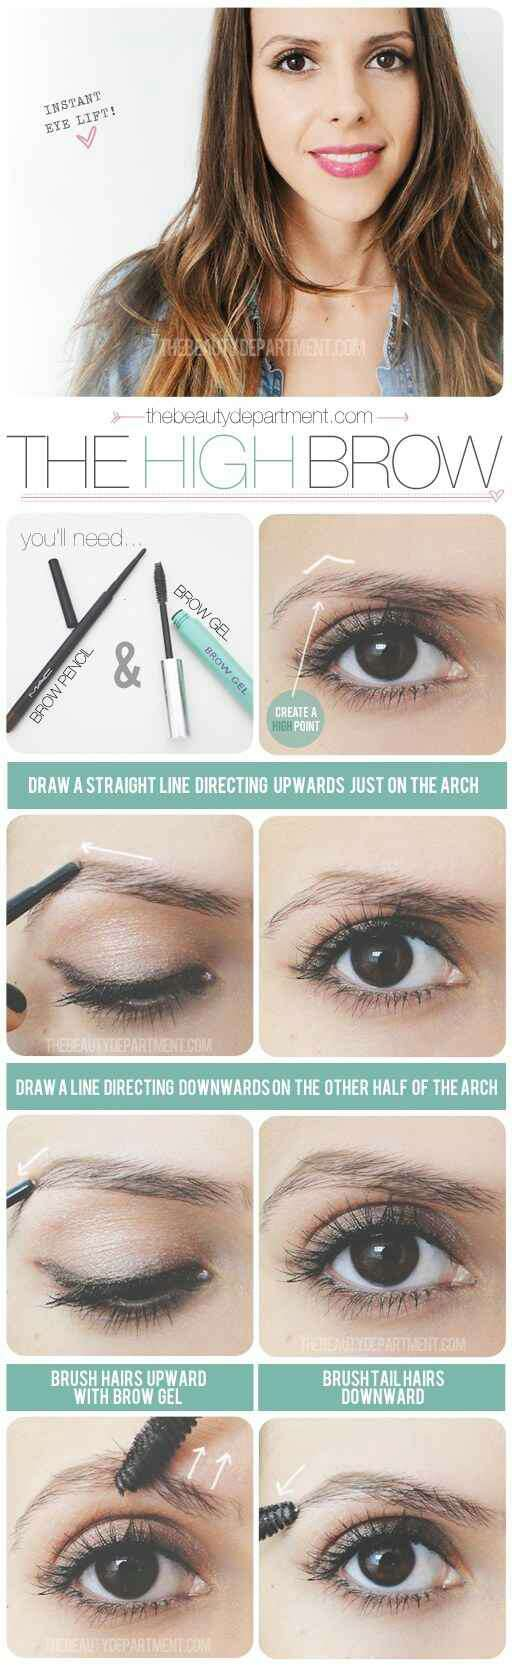 15. Get a refined but natural look with brow gel. Add more shape to your brows without having to fill them in. This is also a great trick for upgrading brows while you're on a warm weather vacation.